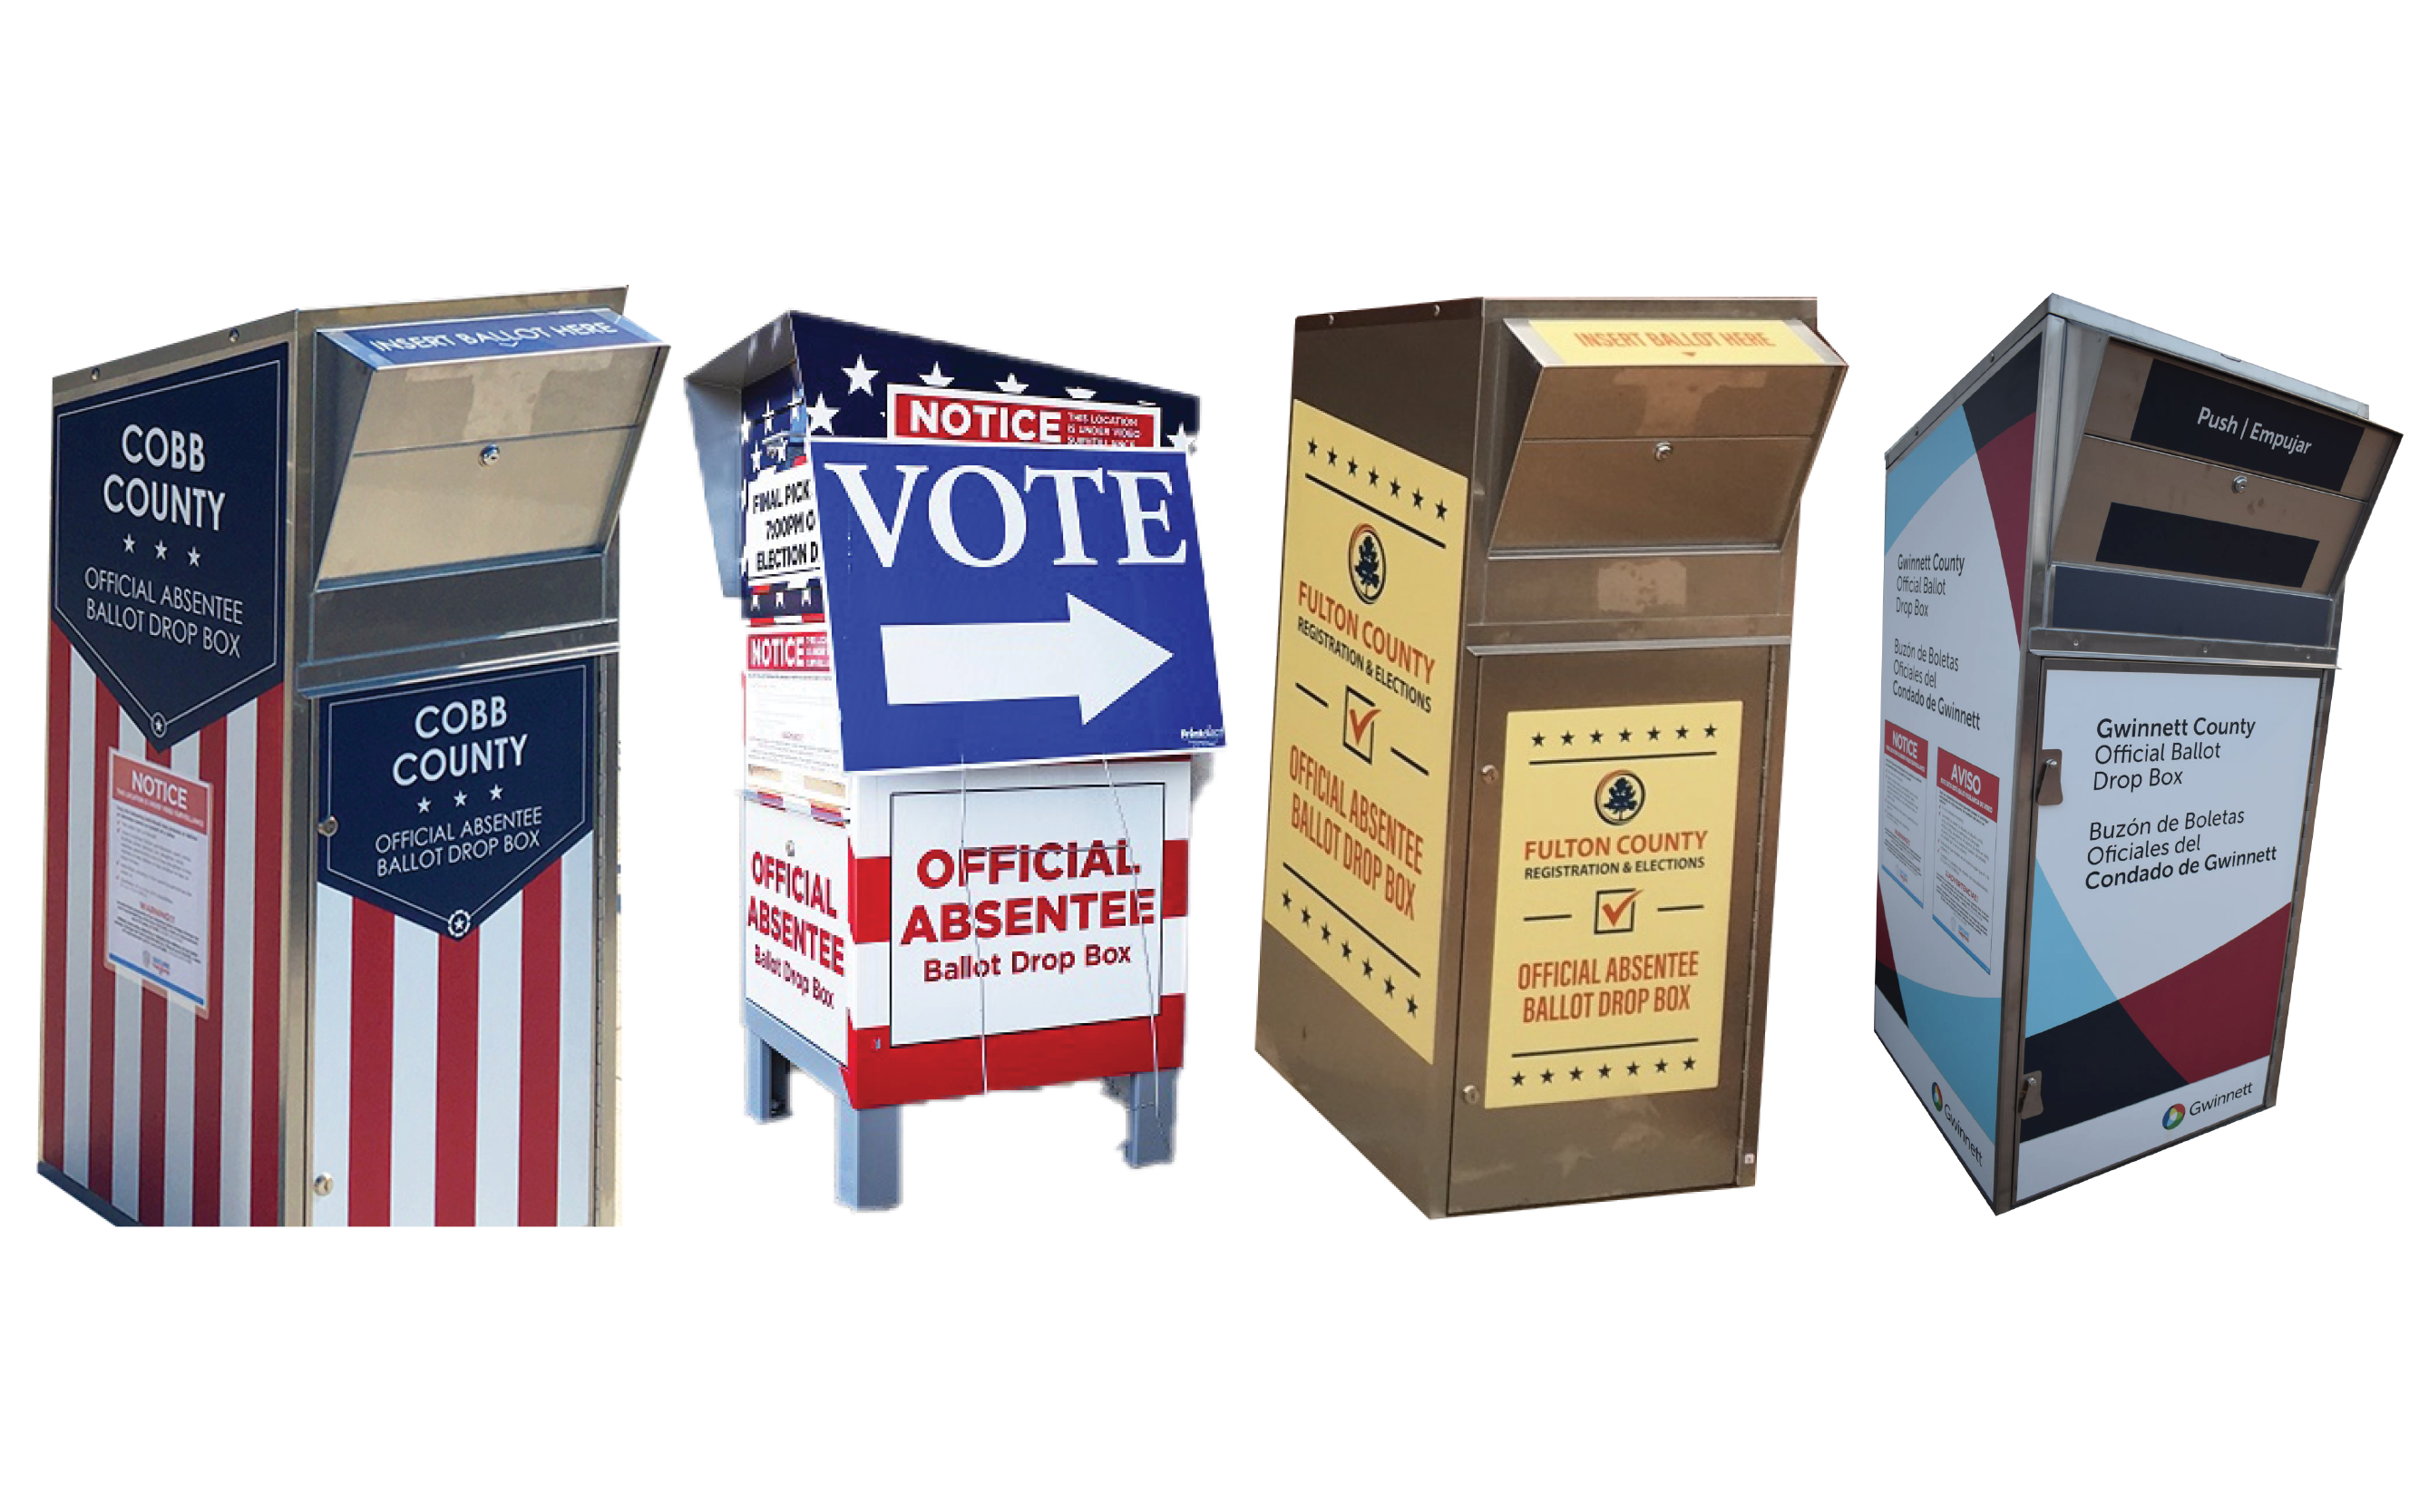 Directory Listing Of Official Absentee Ballot Box Locations Atlanta Jewish Times